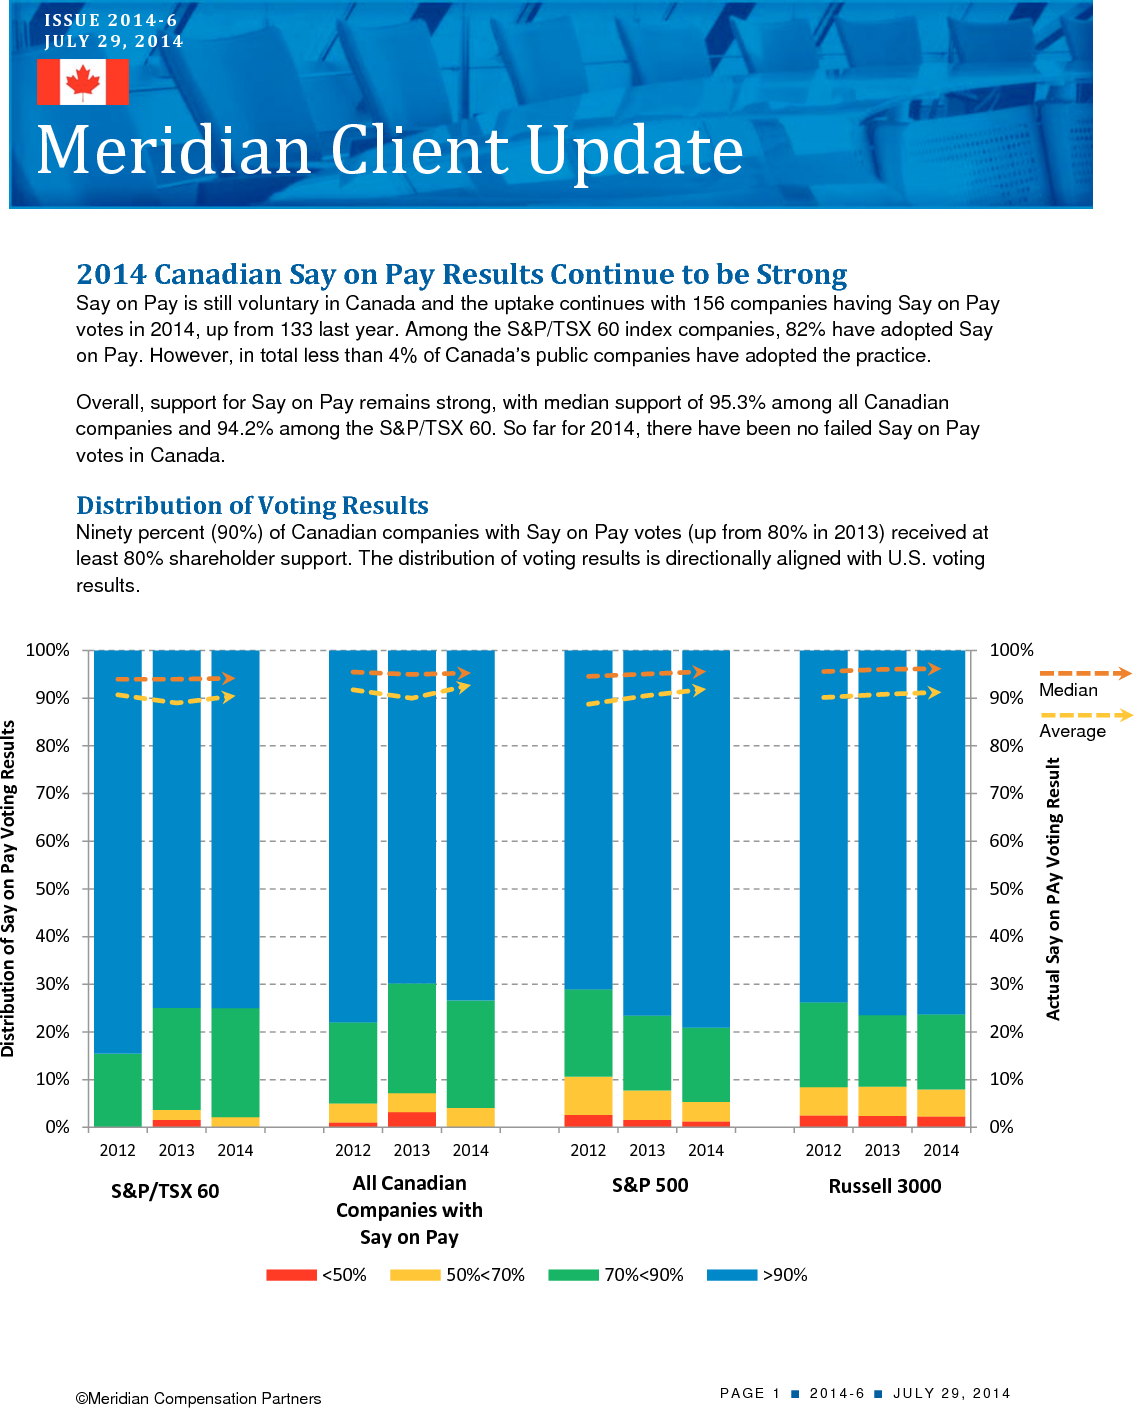 2014 Canadian Say on Pay Results Continue to be Strong (PDF)